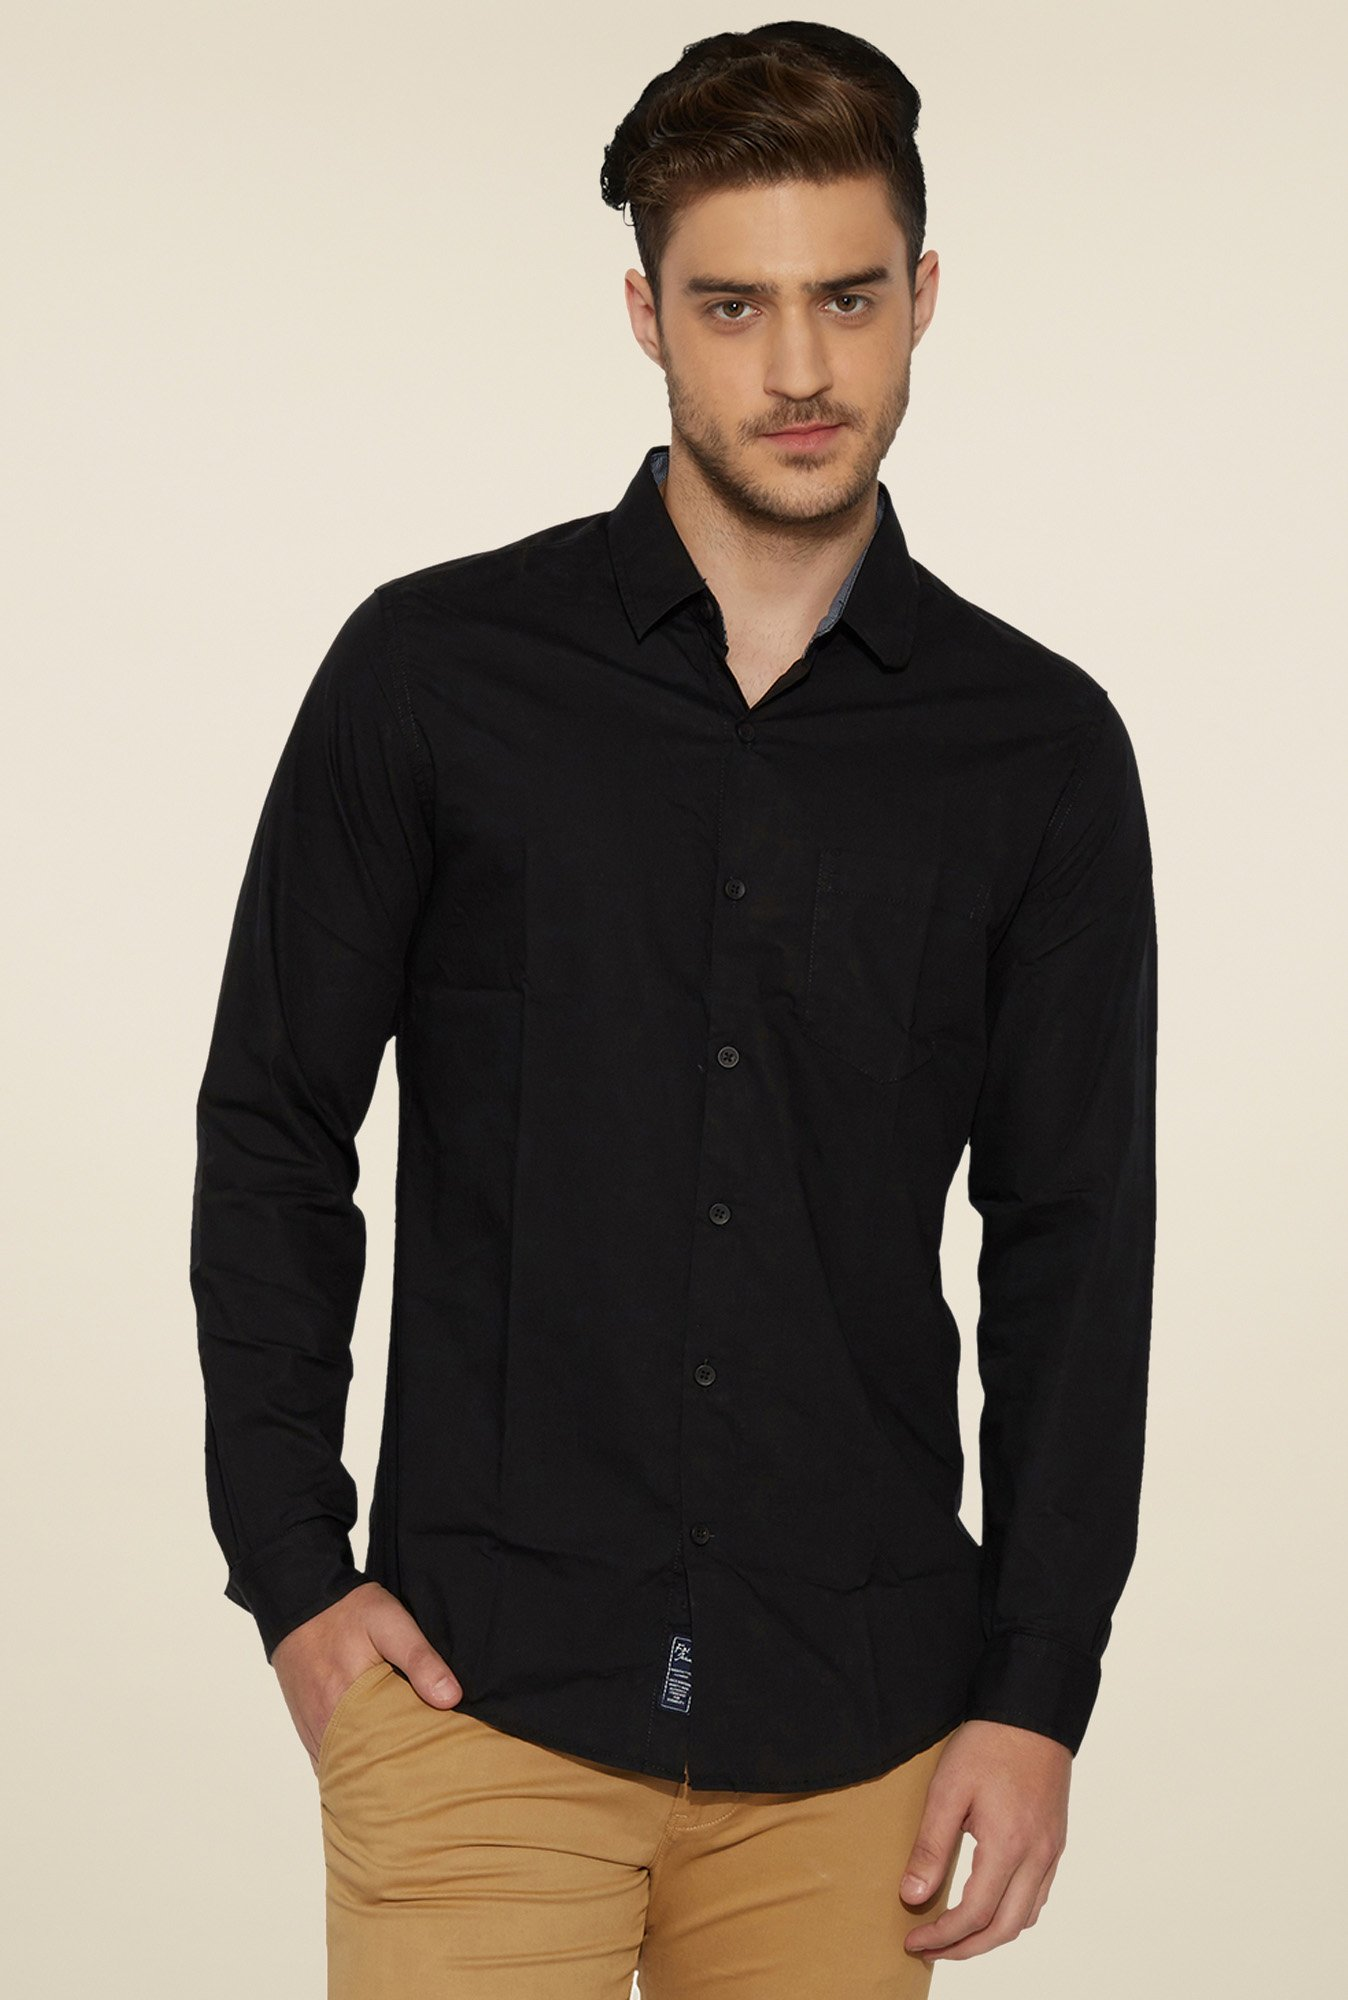 Globus Black Full Sleeves Shirt